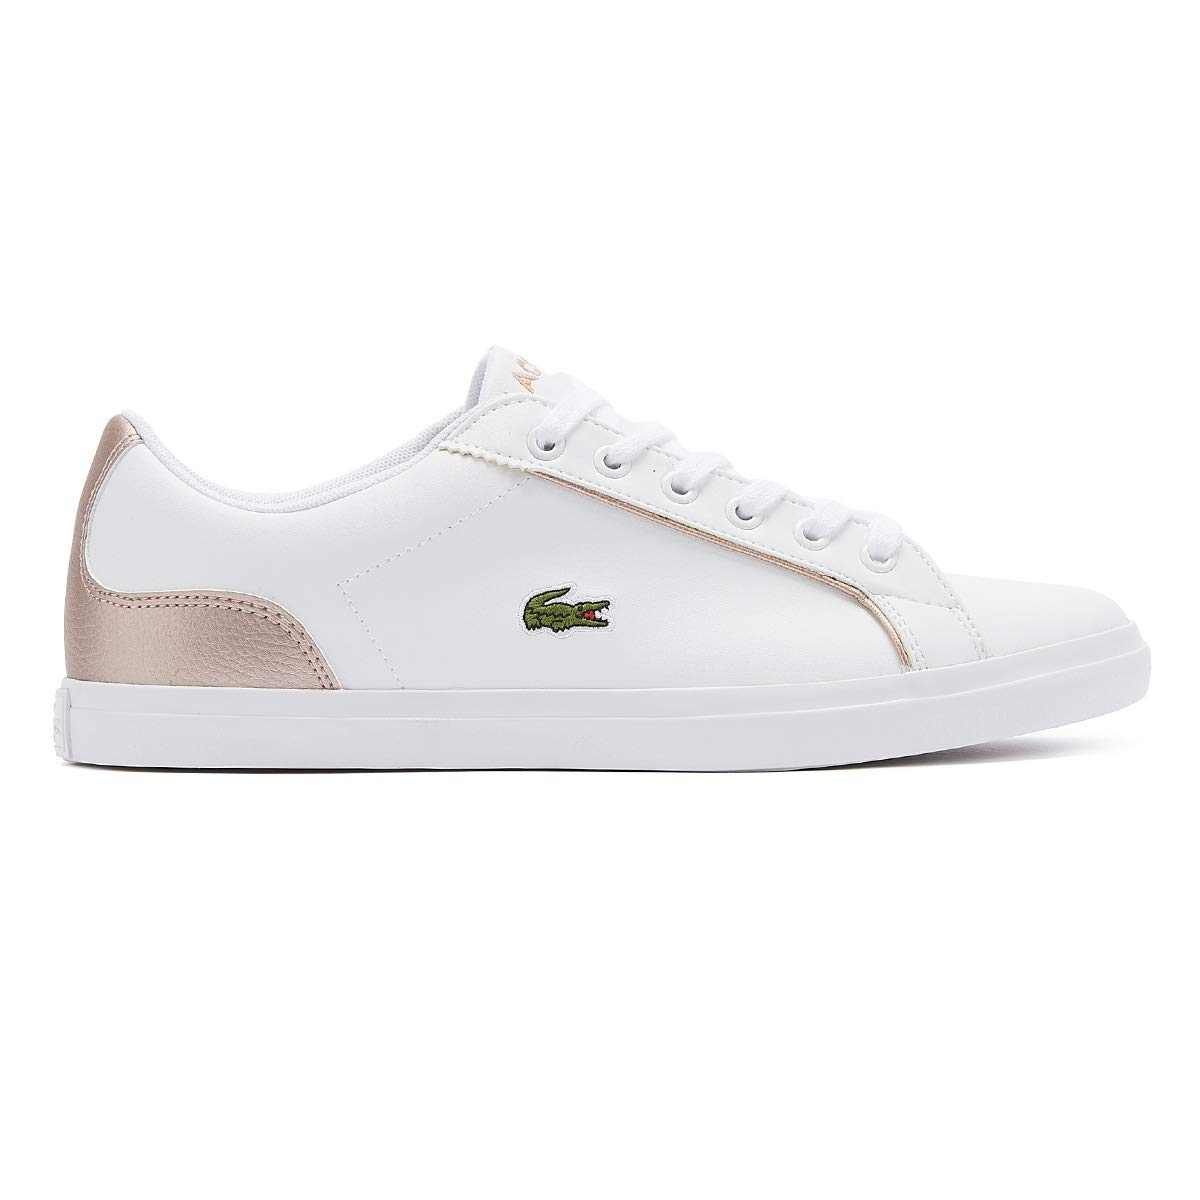 Lacoste Lerond 319 2 CUJ Trainers Girls Black Low top Trainers